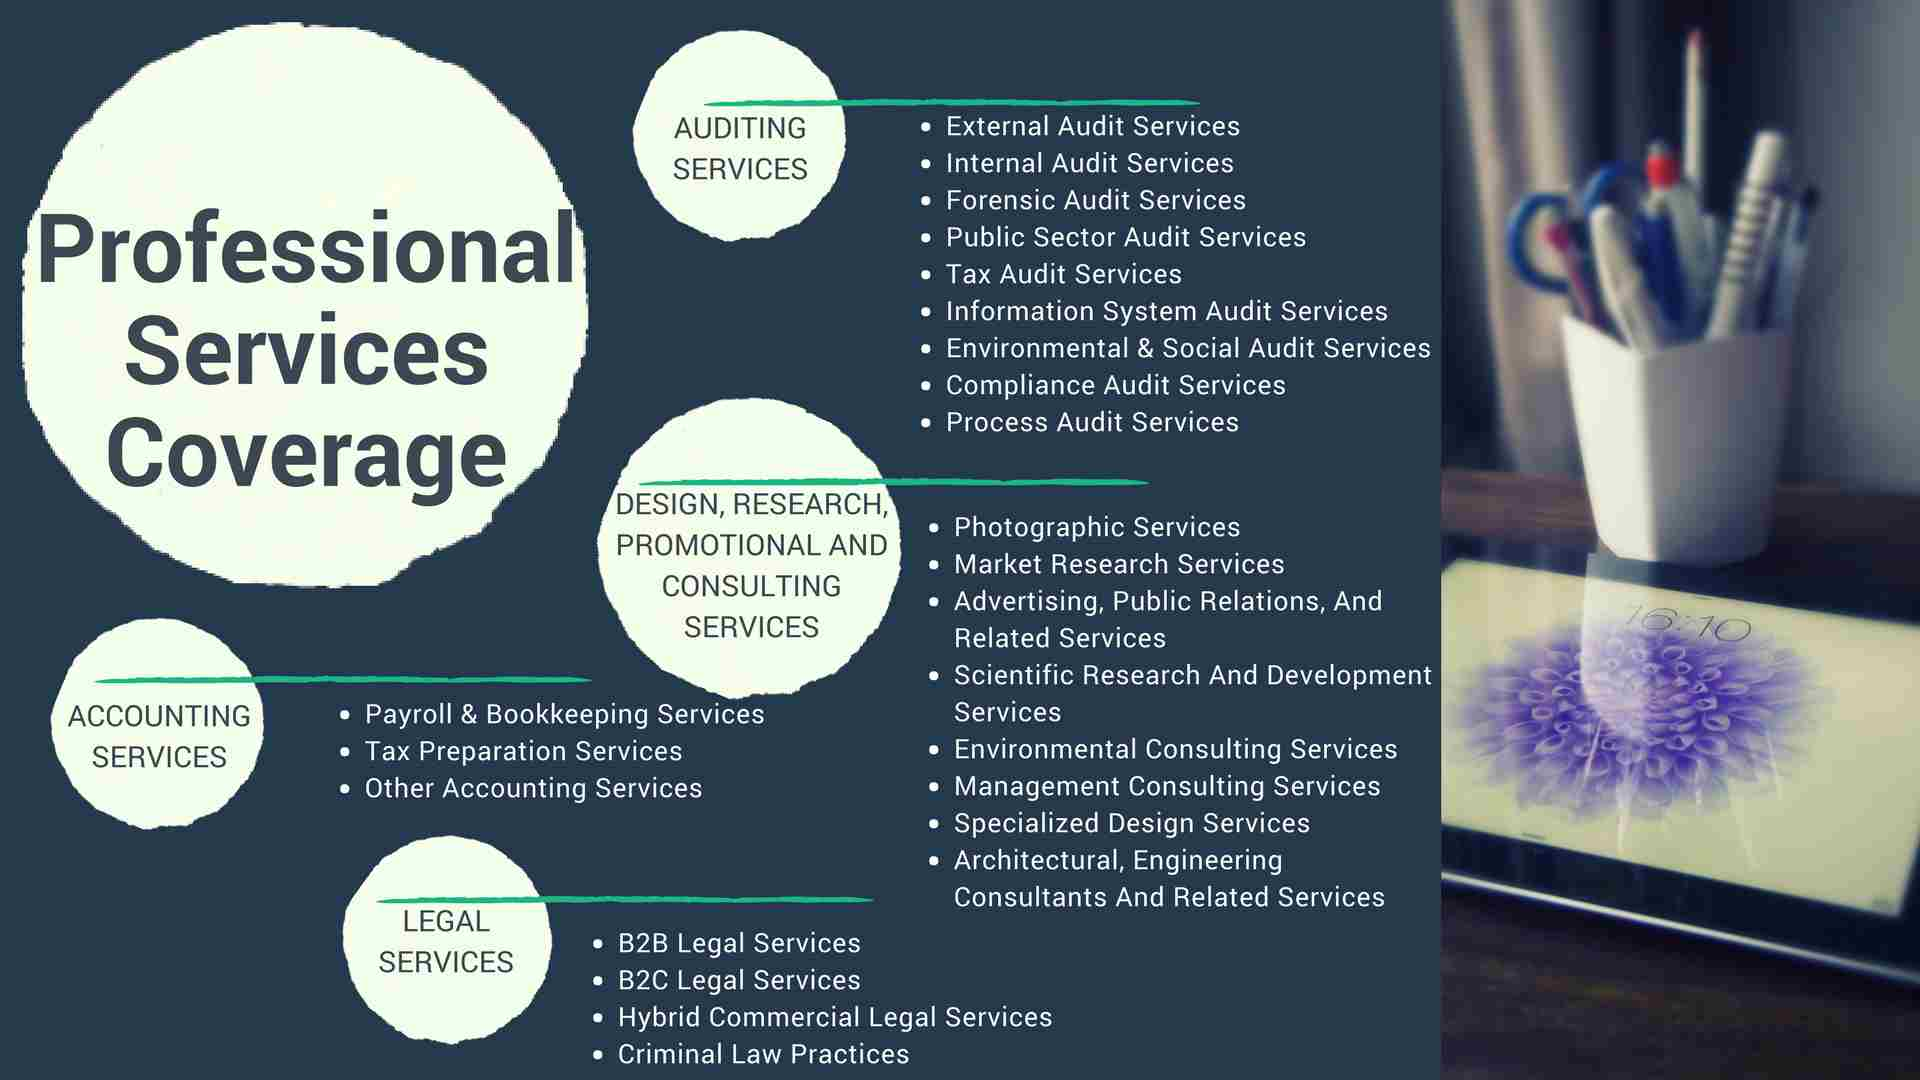 Digital Marketing Agency for Professional Services